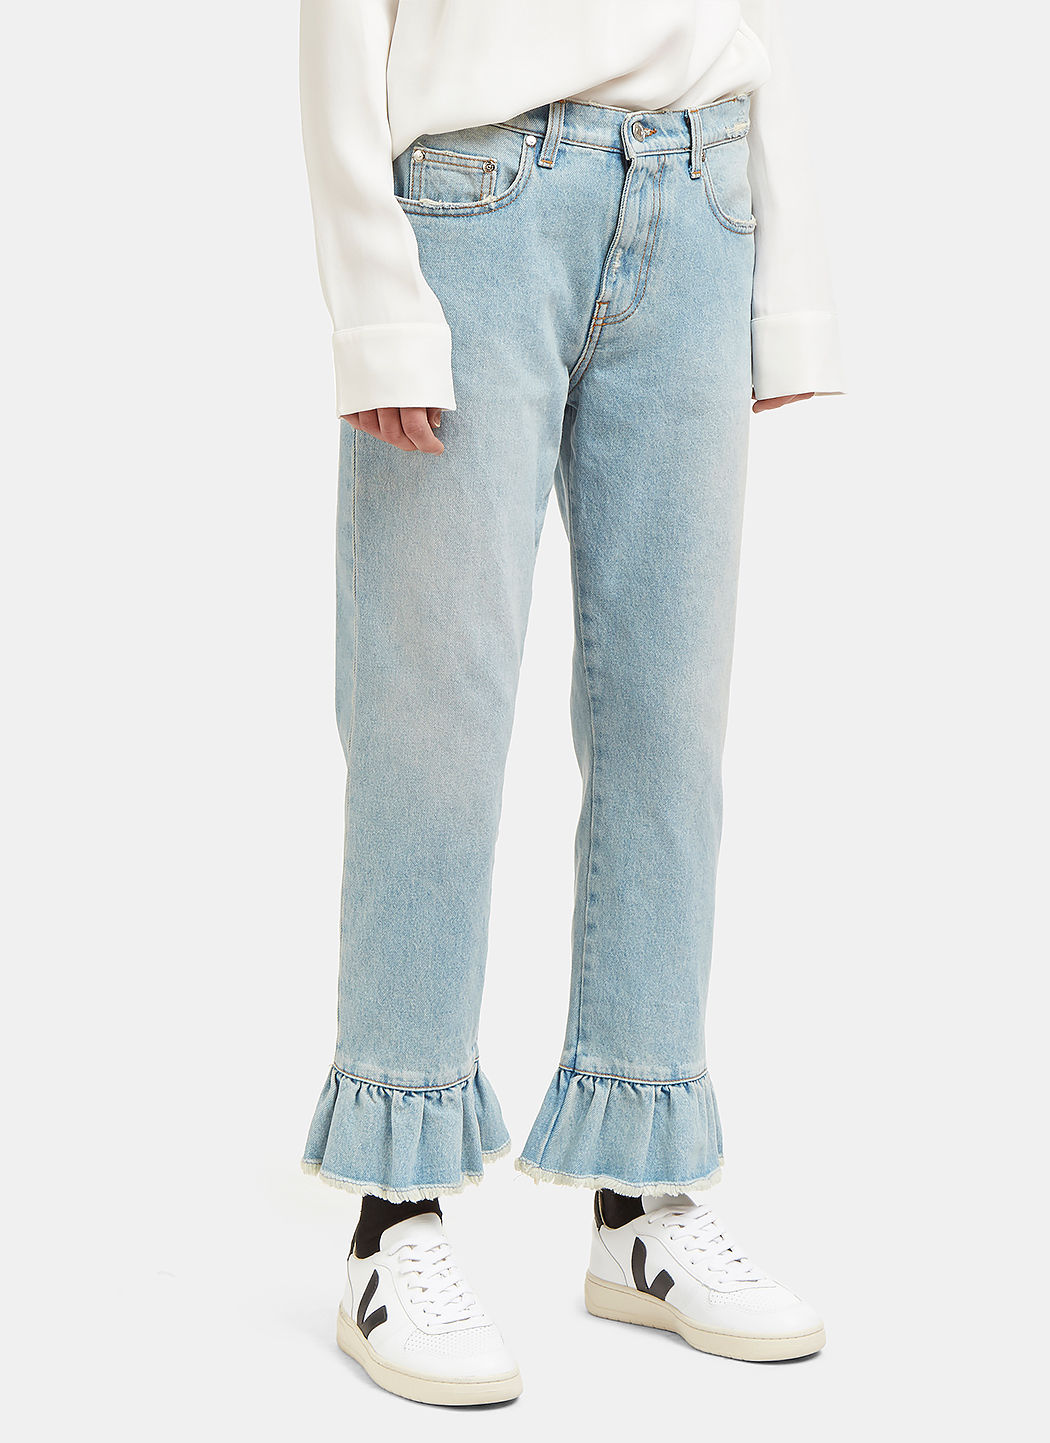 MSGM Distressed Ruffle-Trimmed High-Rise Straight-Leg Jeans in Lightblue